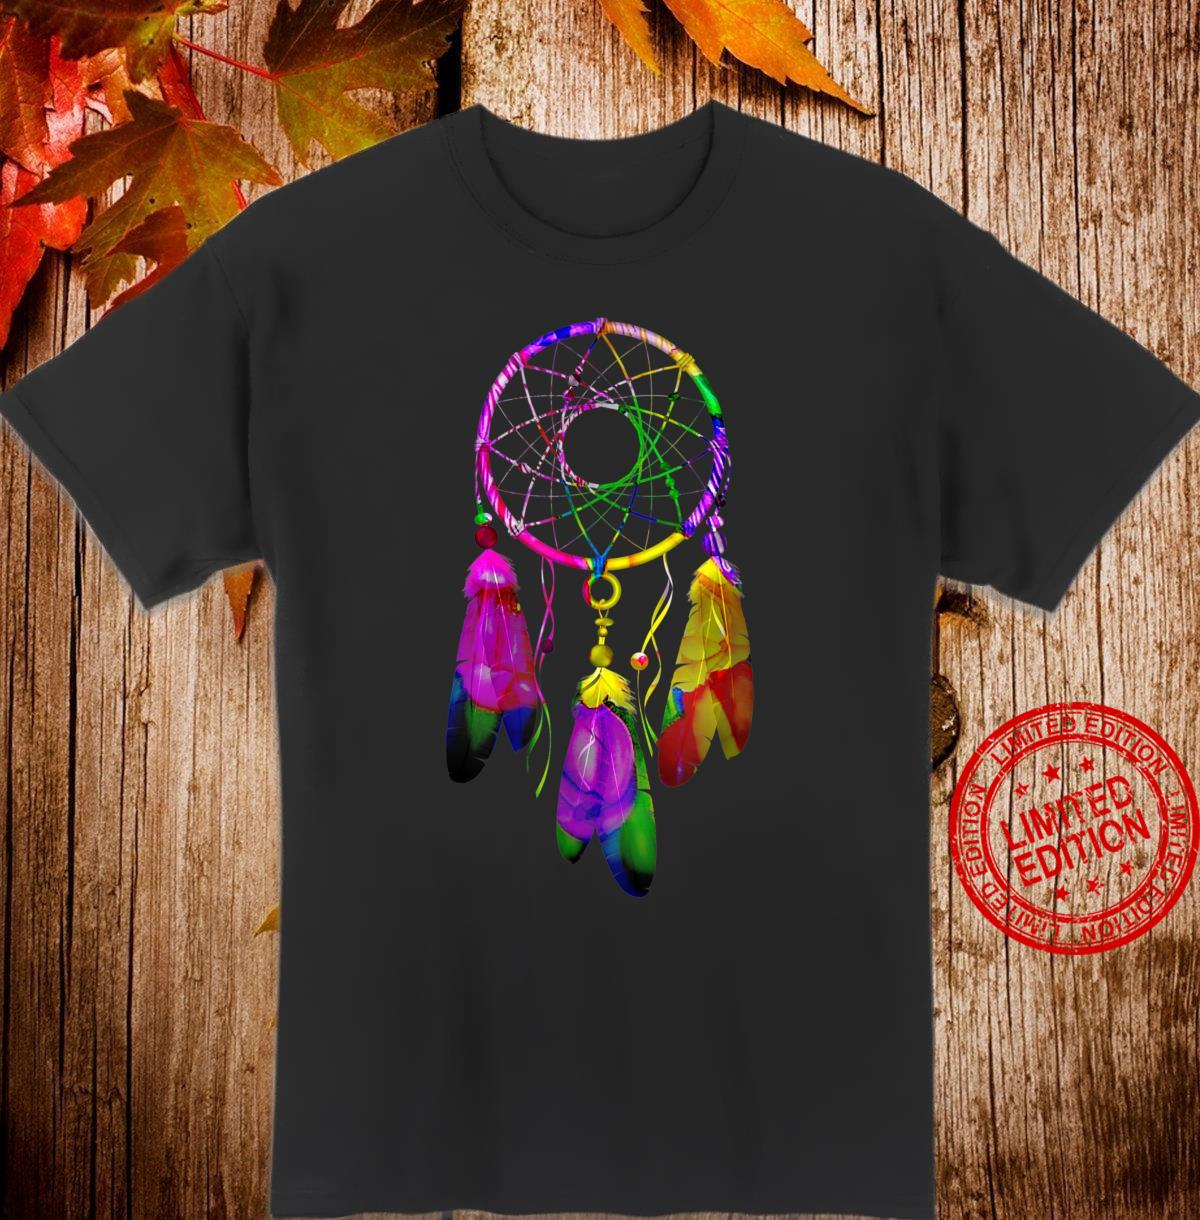 Colorful Dreamcatcher Feathers Native American Indian Tribal Shirt